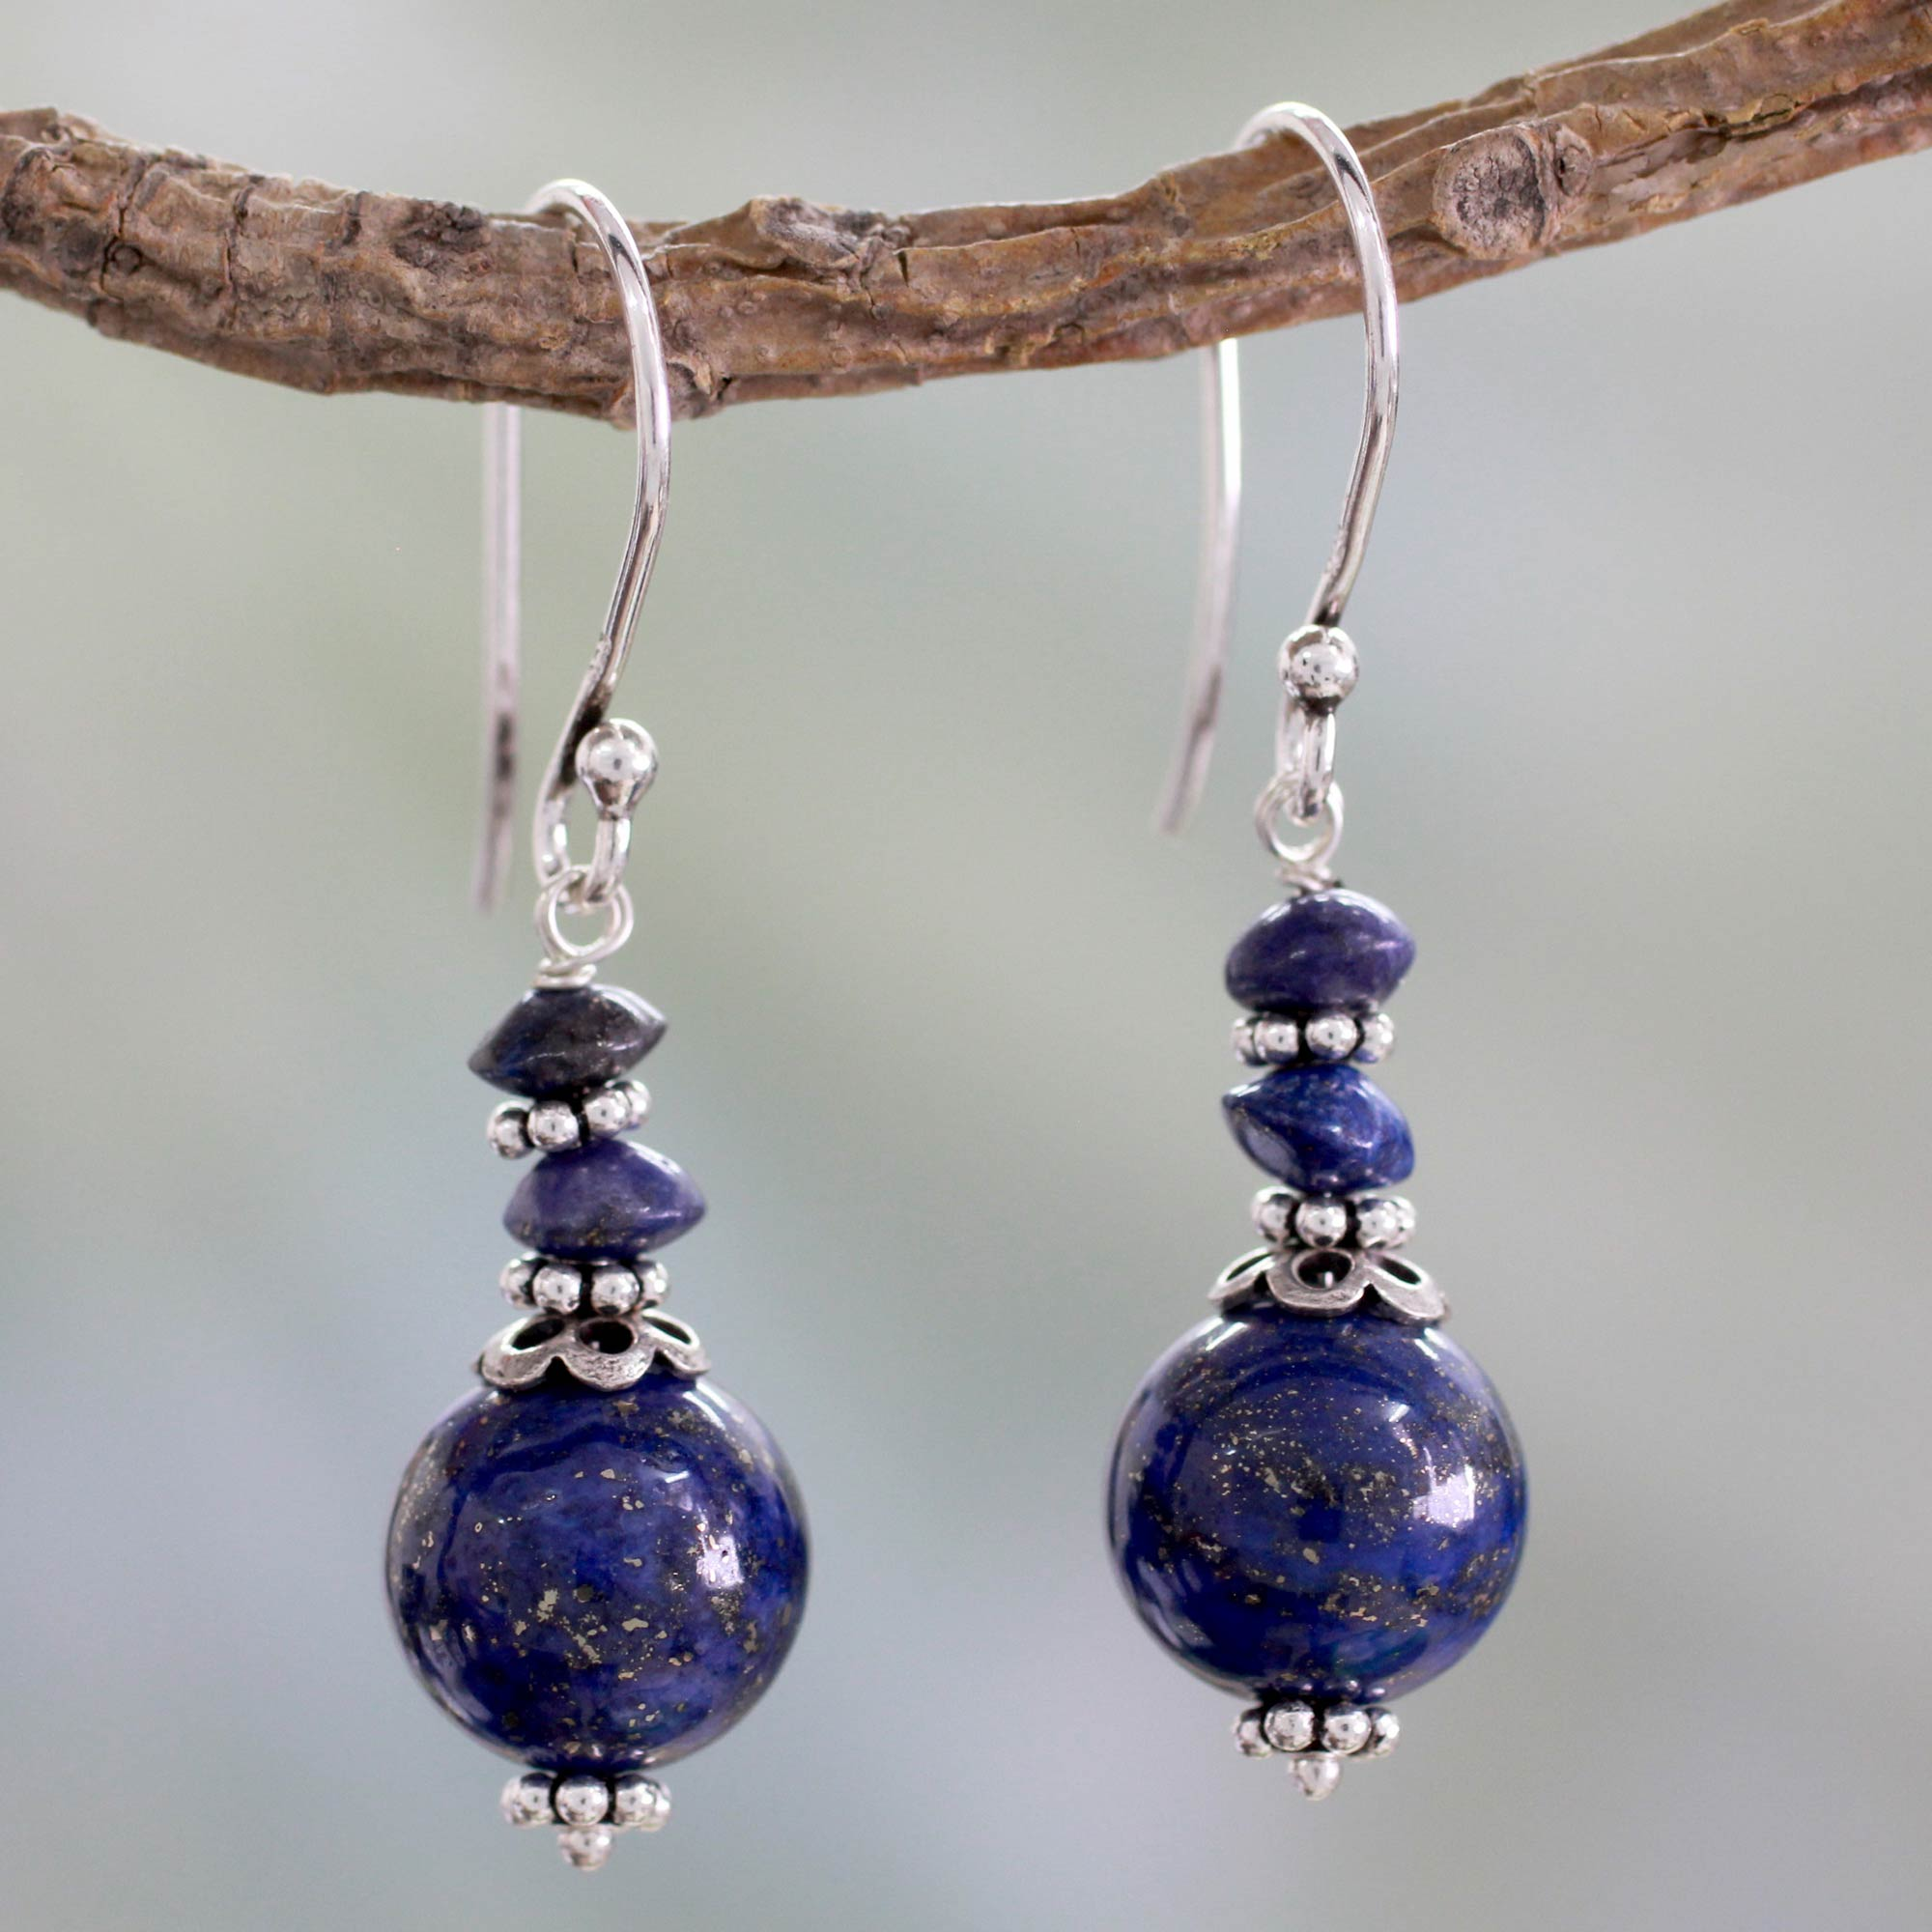 lovepray made gemstone compassion hand products earrings genuine lapis jewelry lazuli